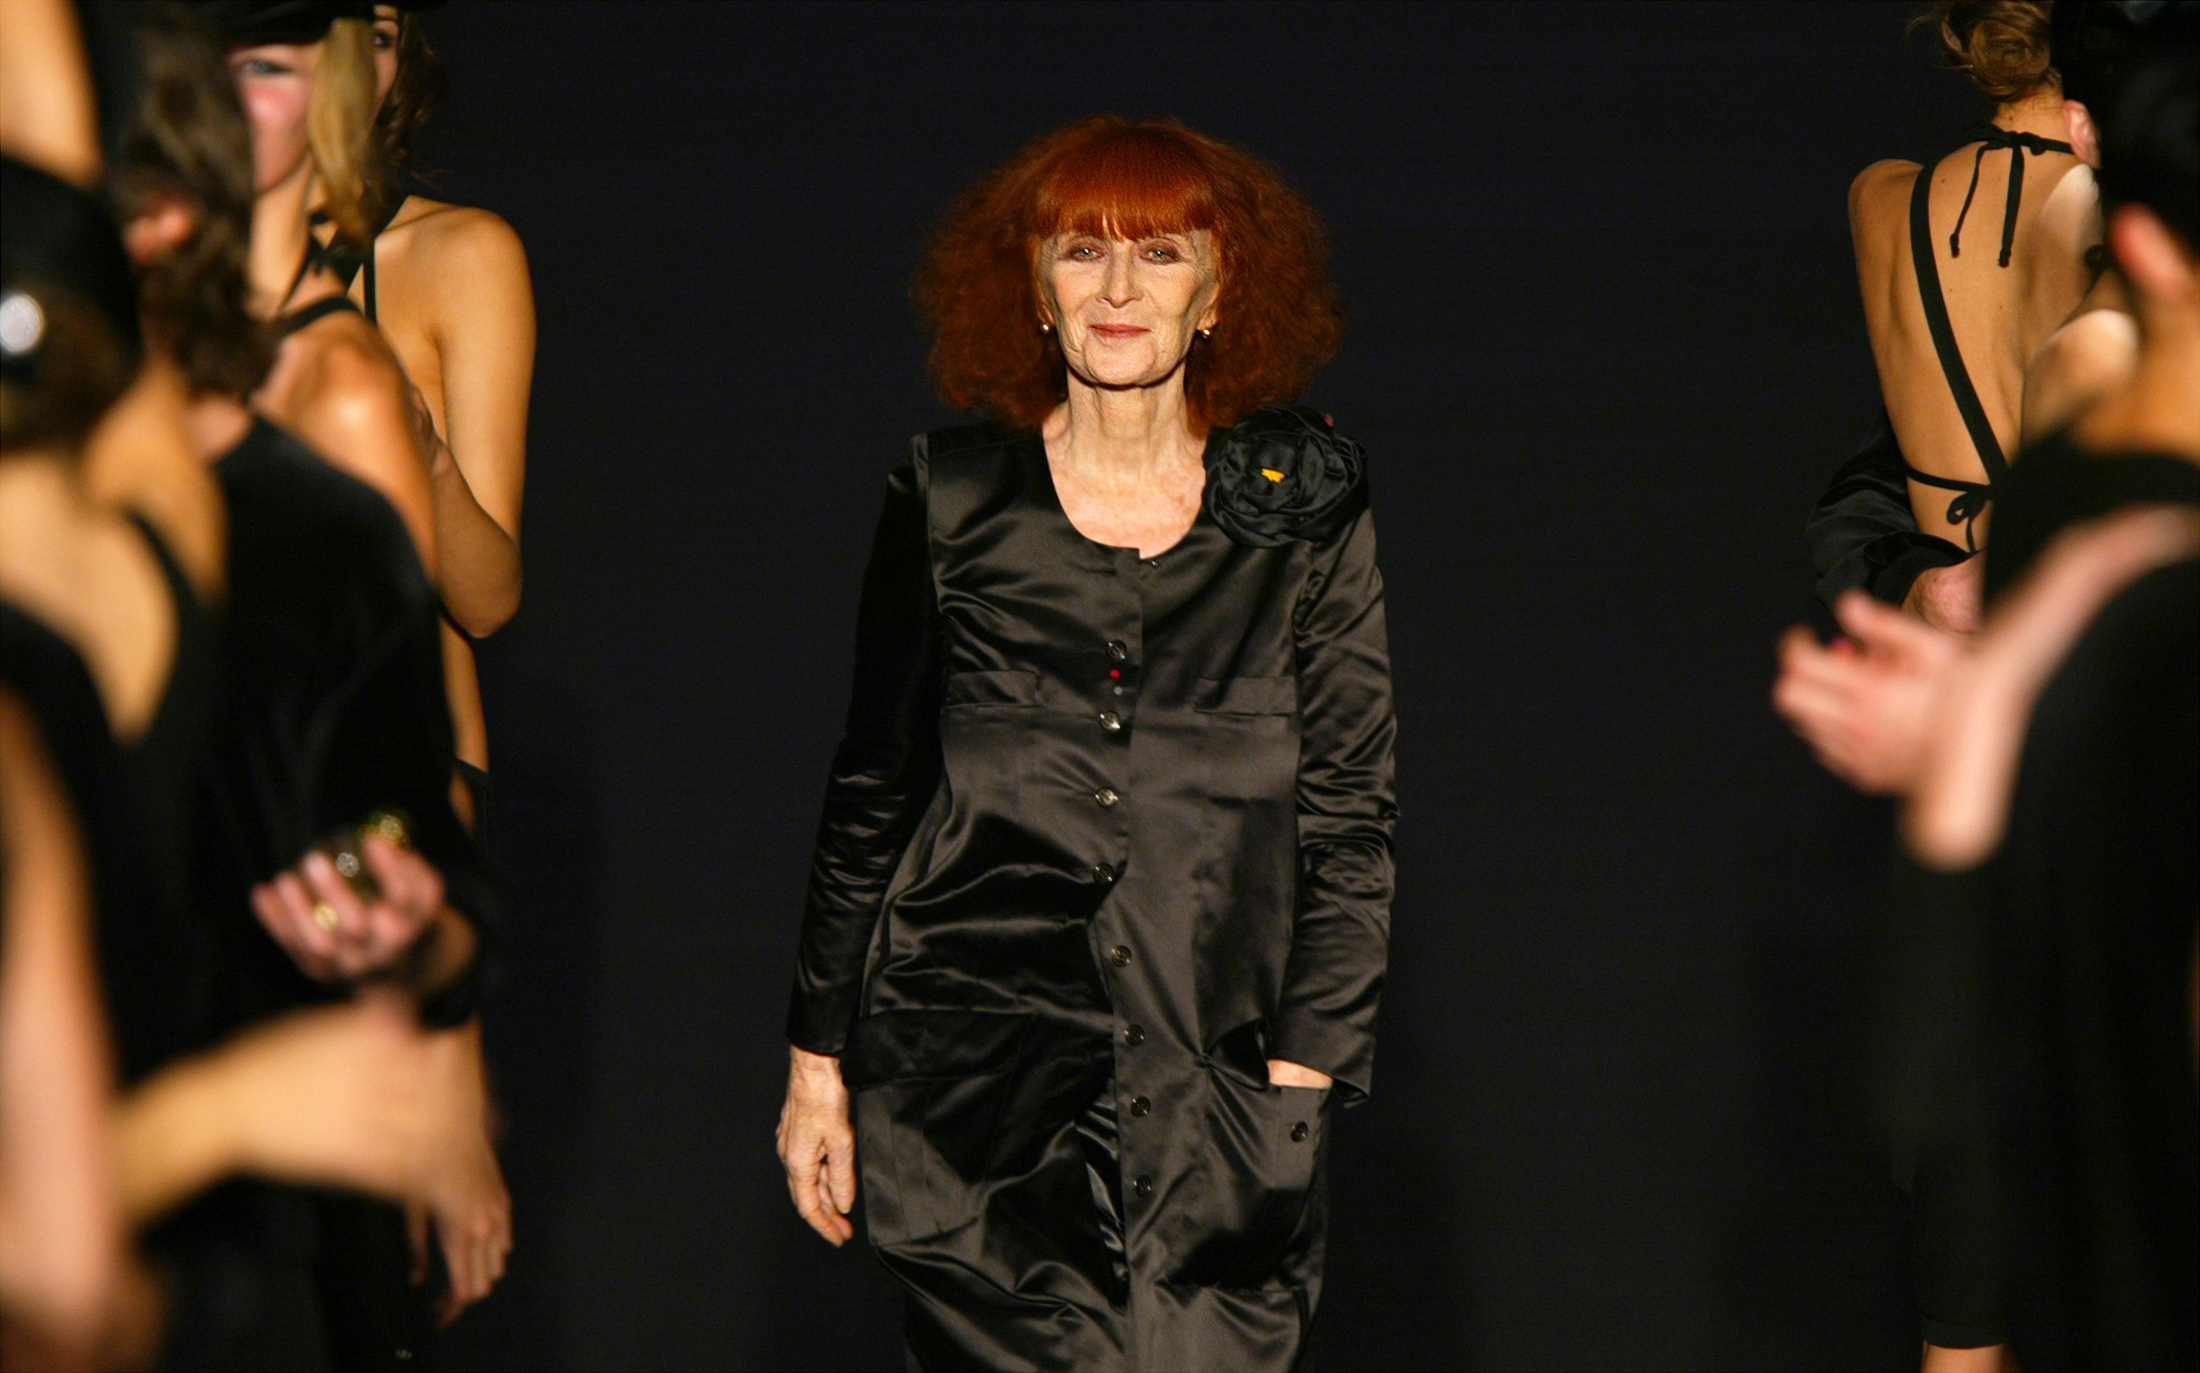 Models applaud French designer Sonia Rykiel at the end of her Spring-Summer ready-to-wear women's fashion collection for 2004 in Paris, October 9, 2003. REUTERS/Charles Platiau REUTERS  JES/ - RP4DRHZPUEAA